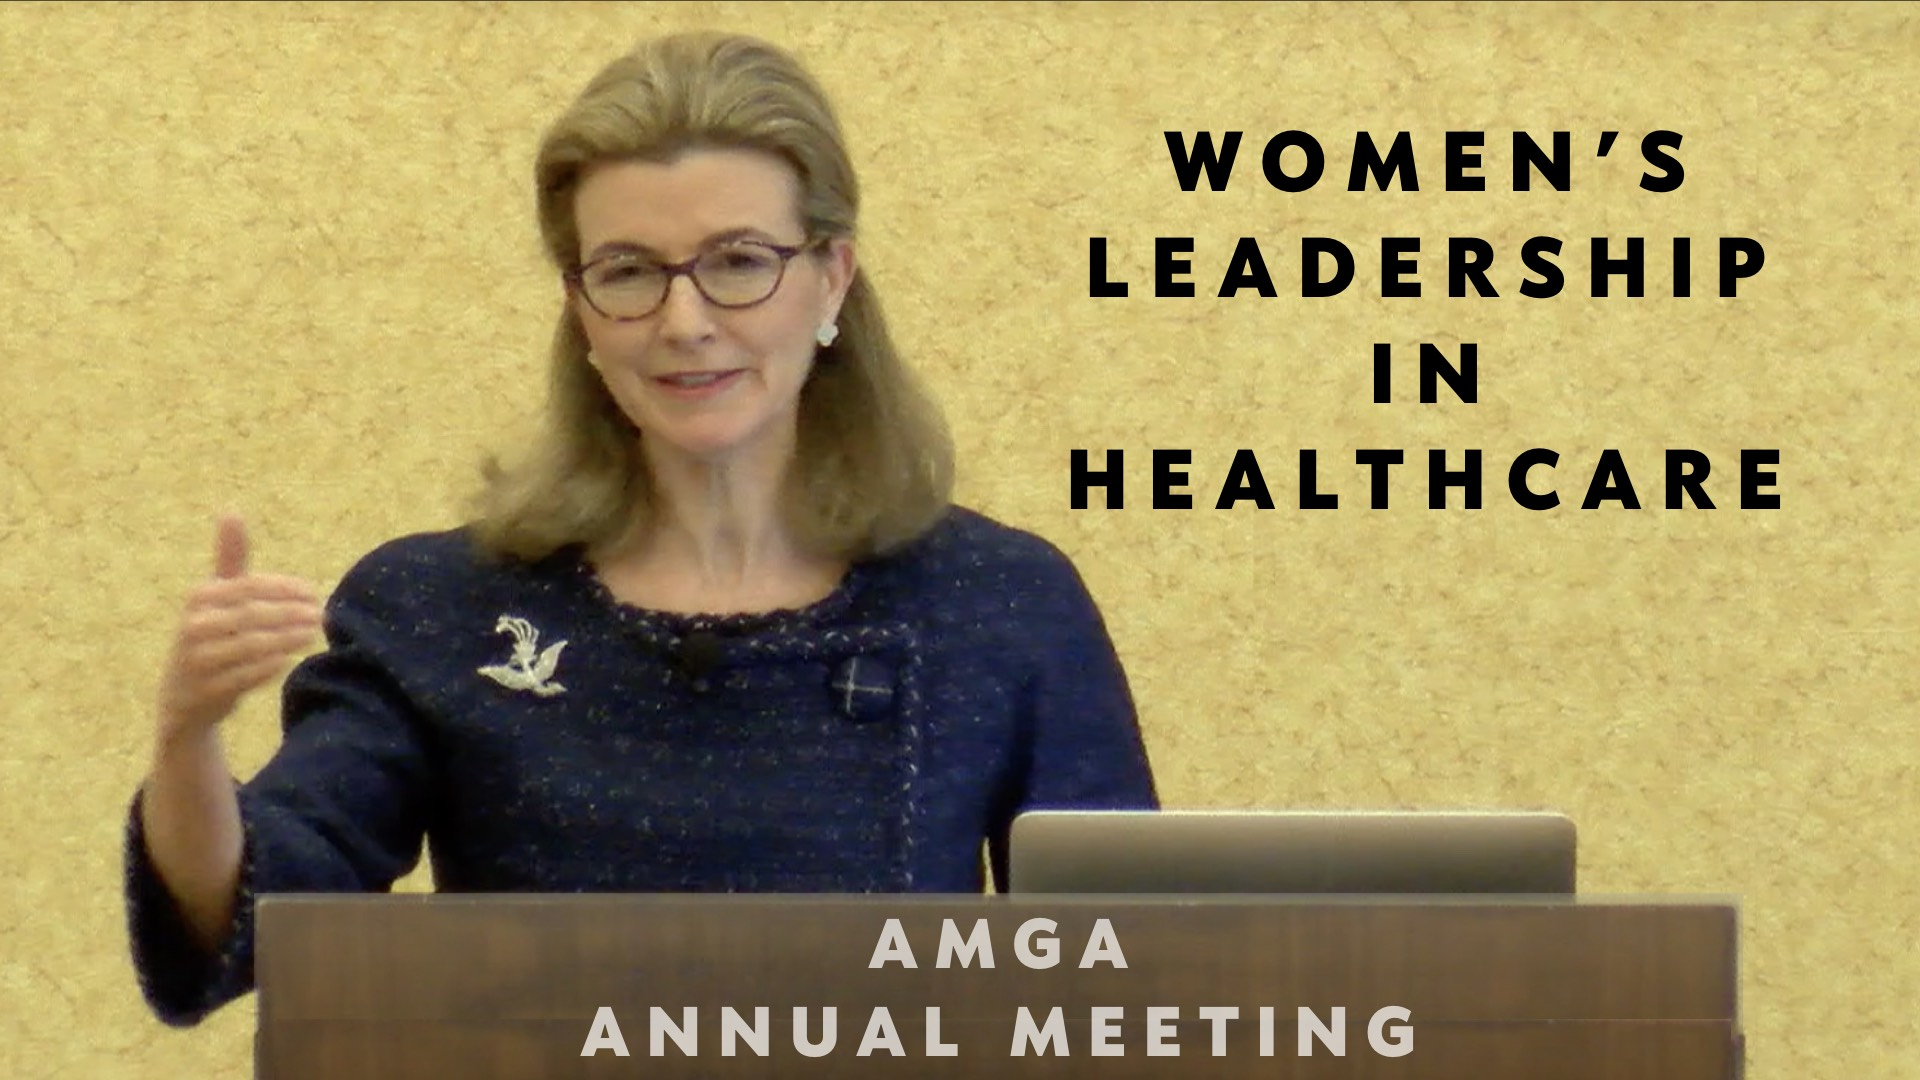 Christine Spadafor spoke on gender diversity and other leadership issues for women in healthcare.